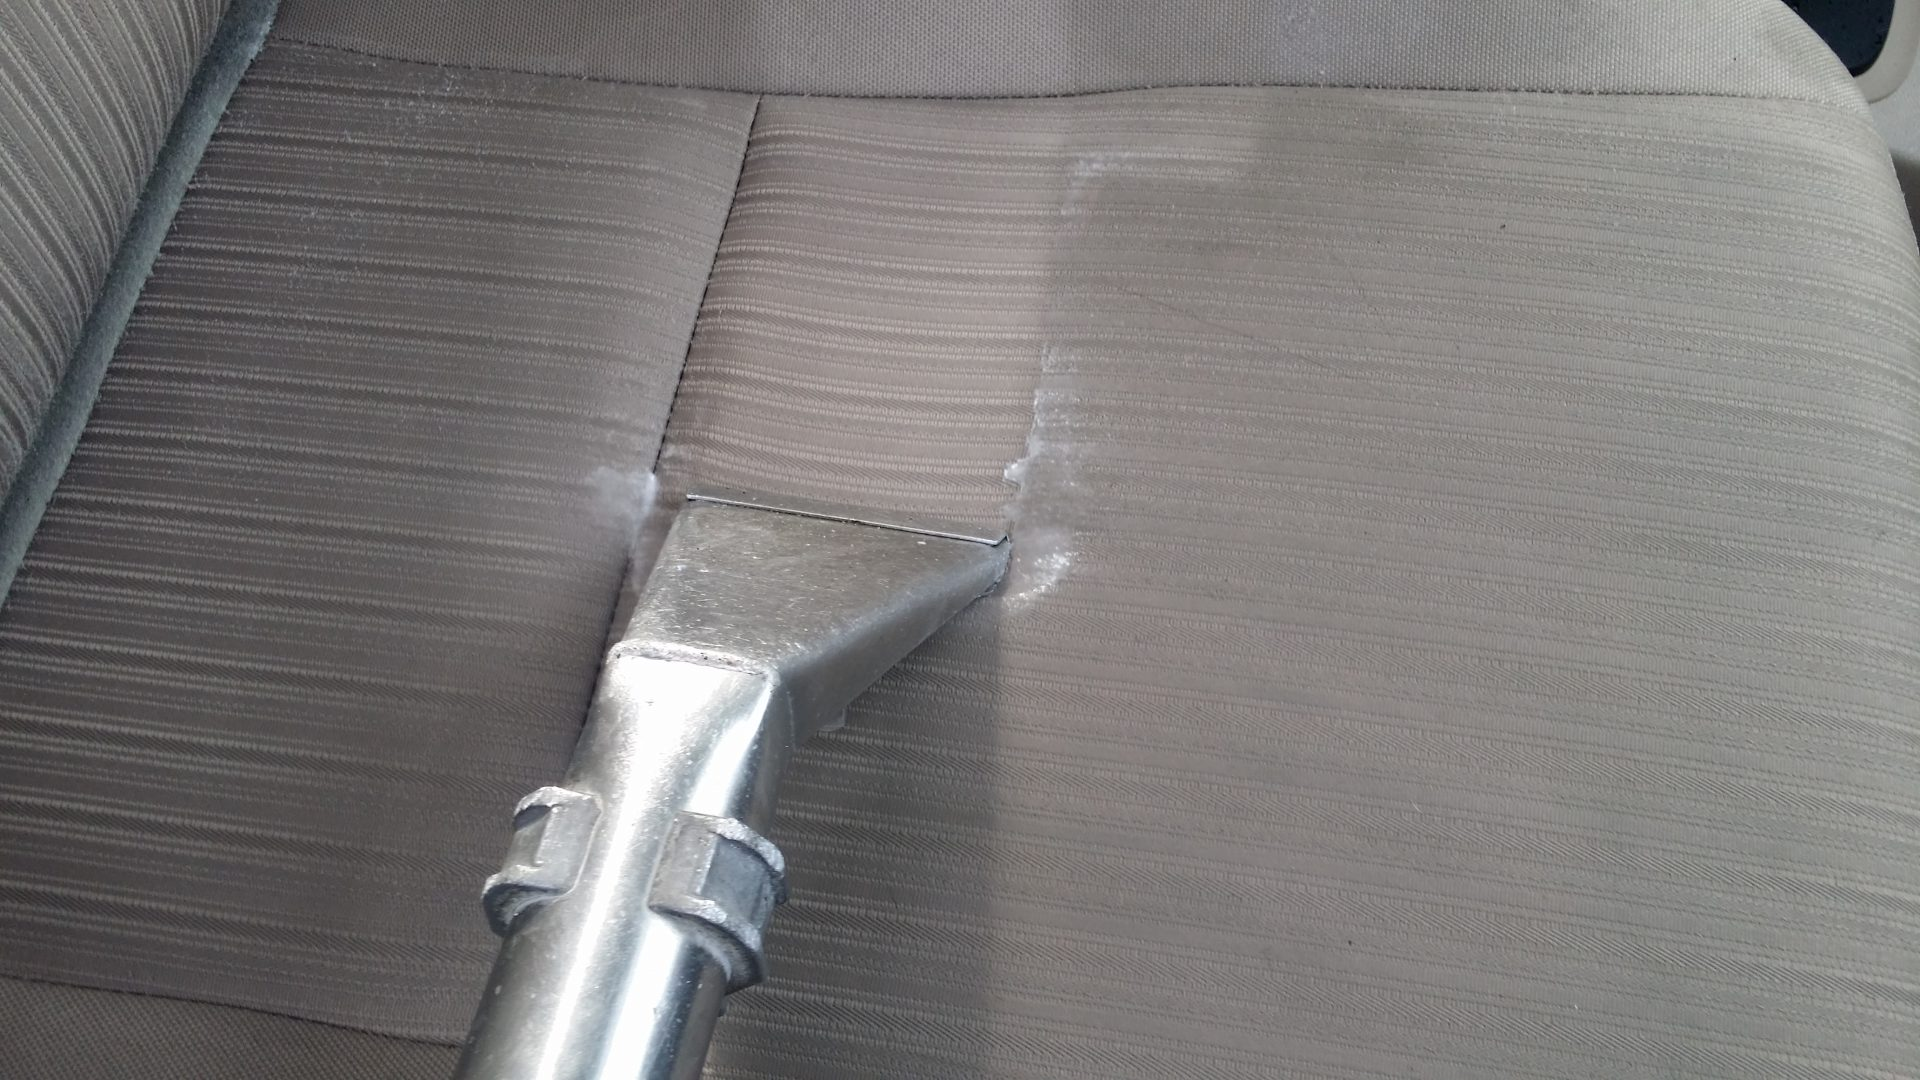 Steam Cleaning A Car Upholstery Seat